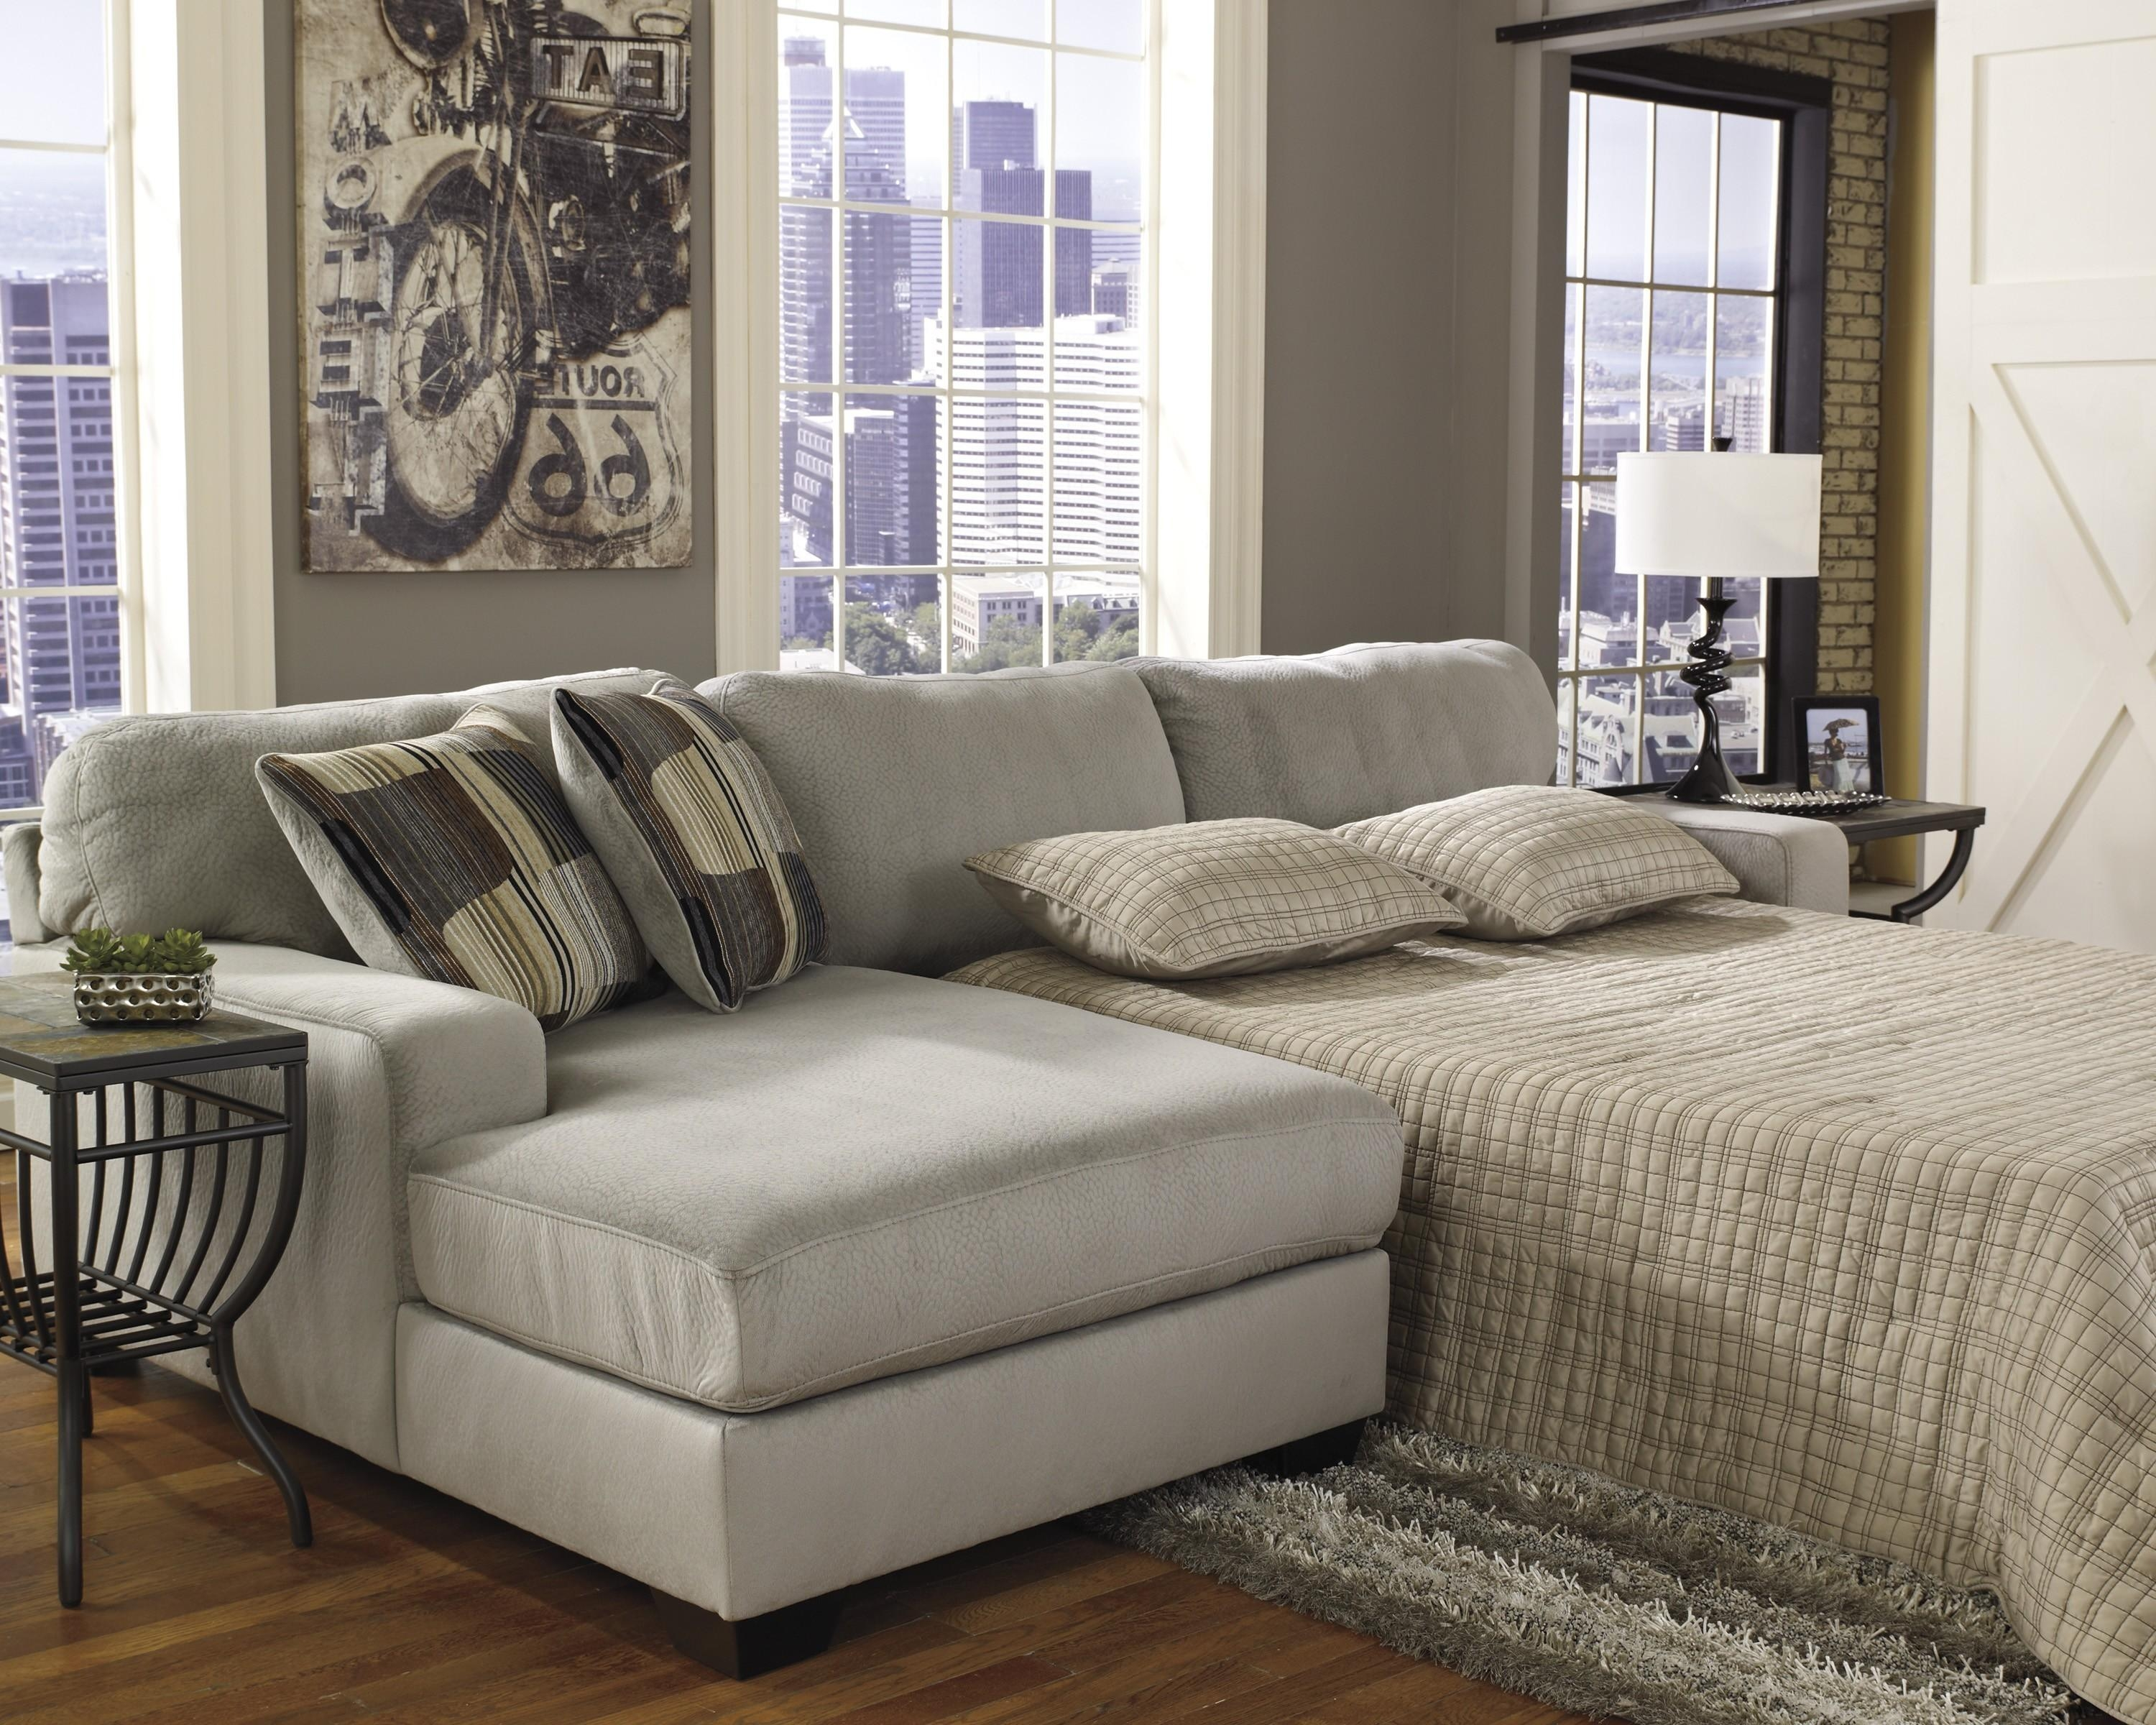 L Shaped Sectional Sleeper Sofa | Tehranmix Decoration With Los Angeles Sleeper Sofas (View 17 of 20)